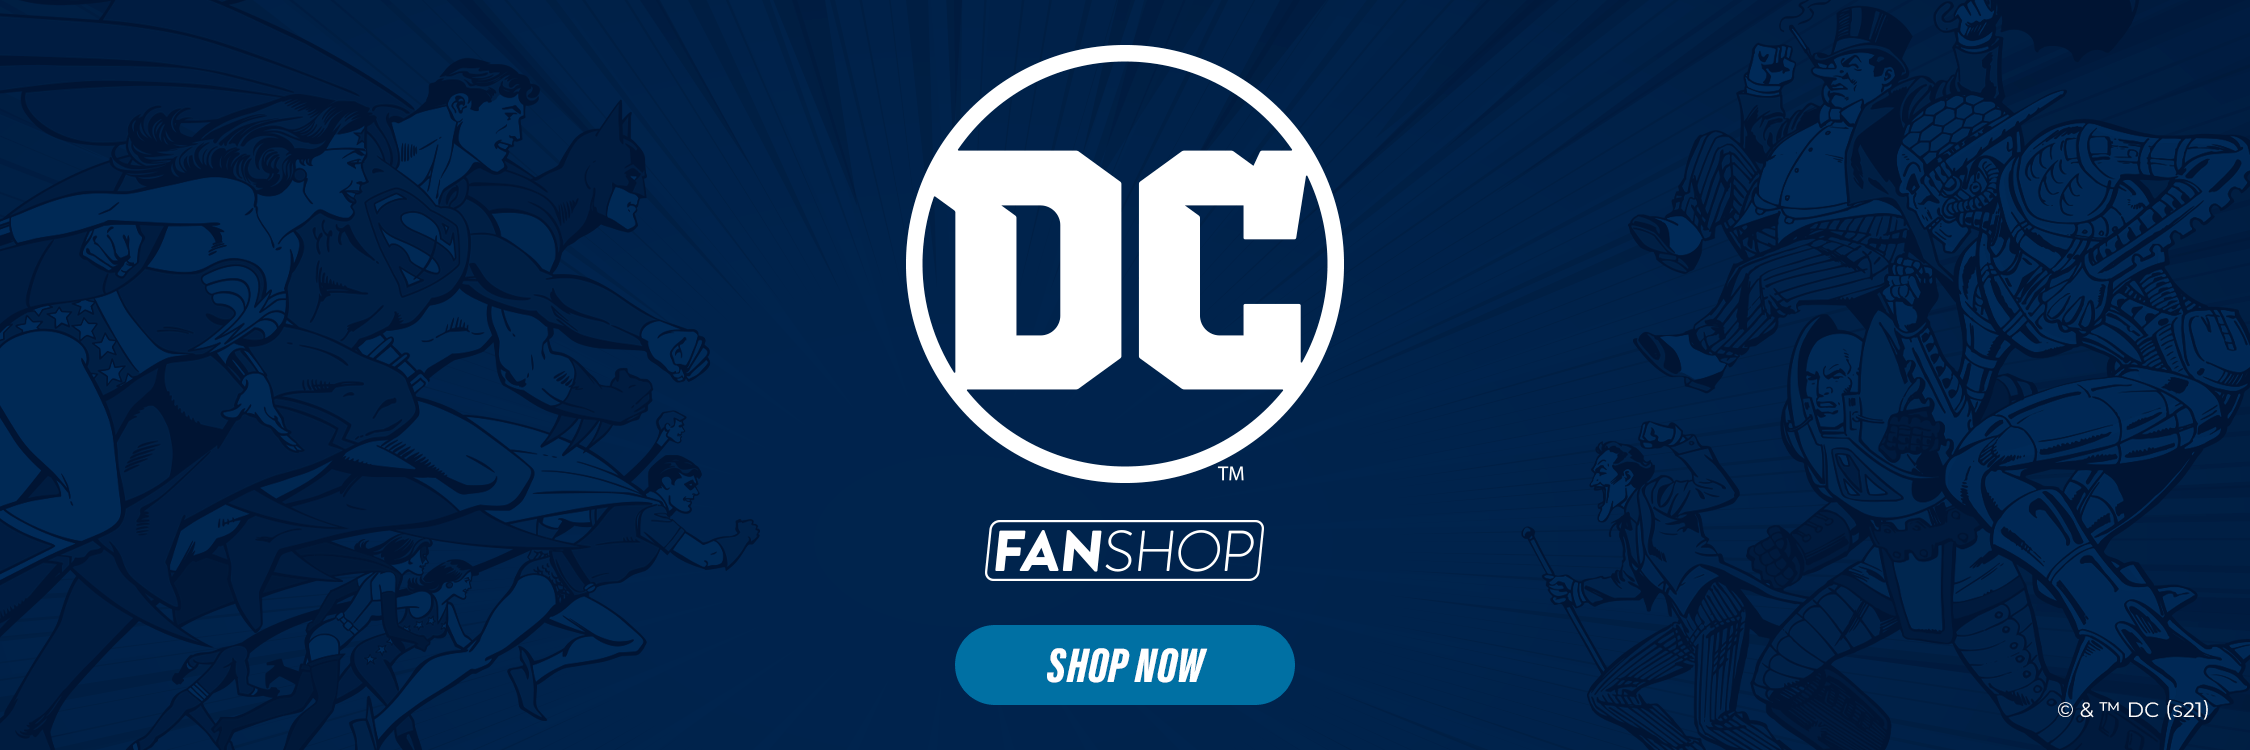 DC FanShop Shop Now. Grayscale heroes in background